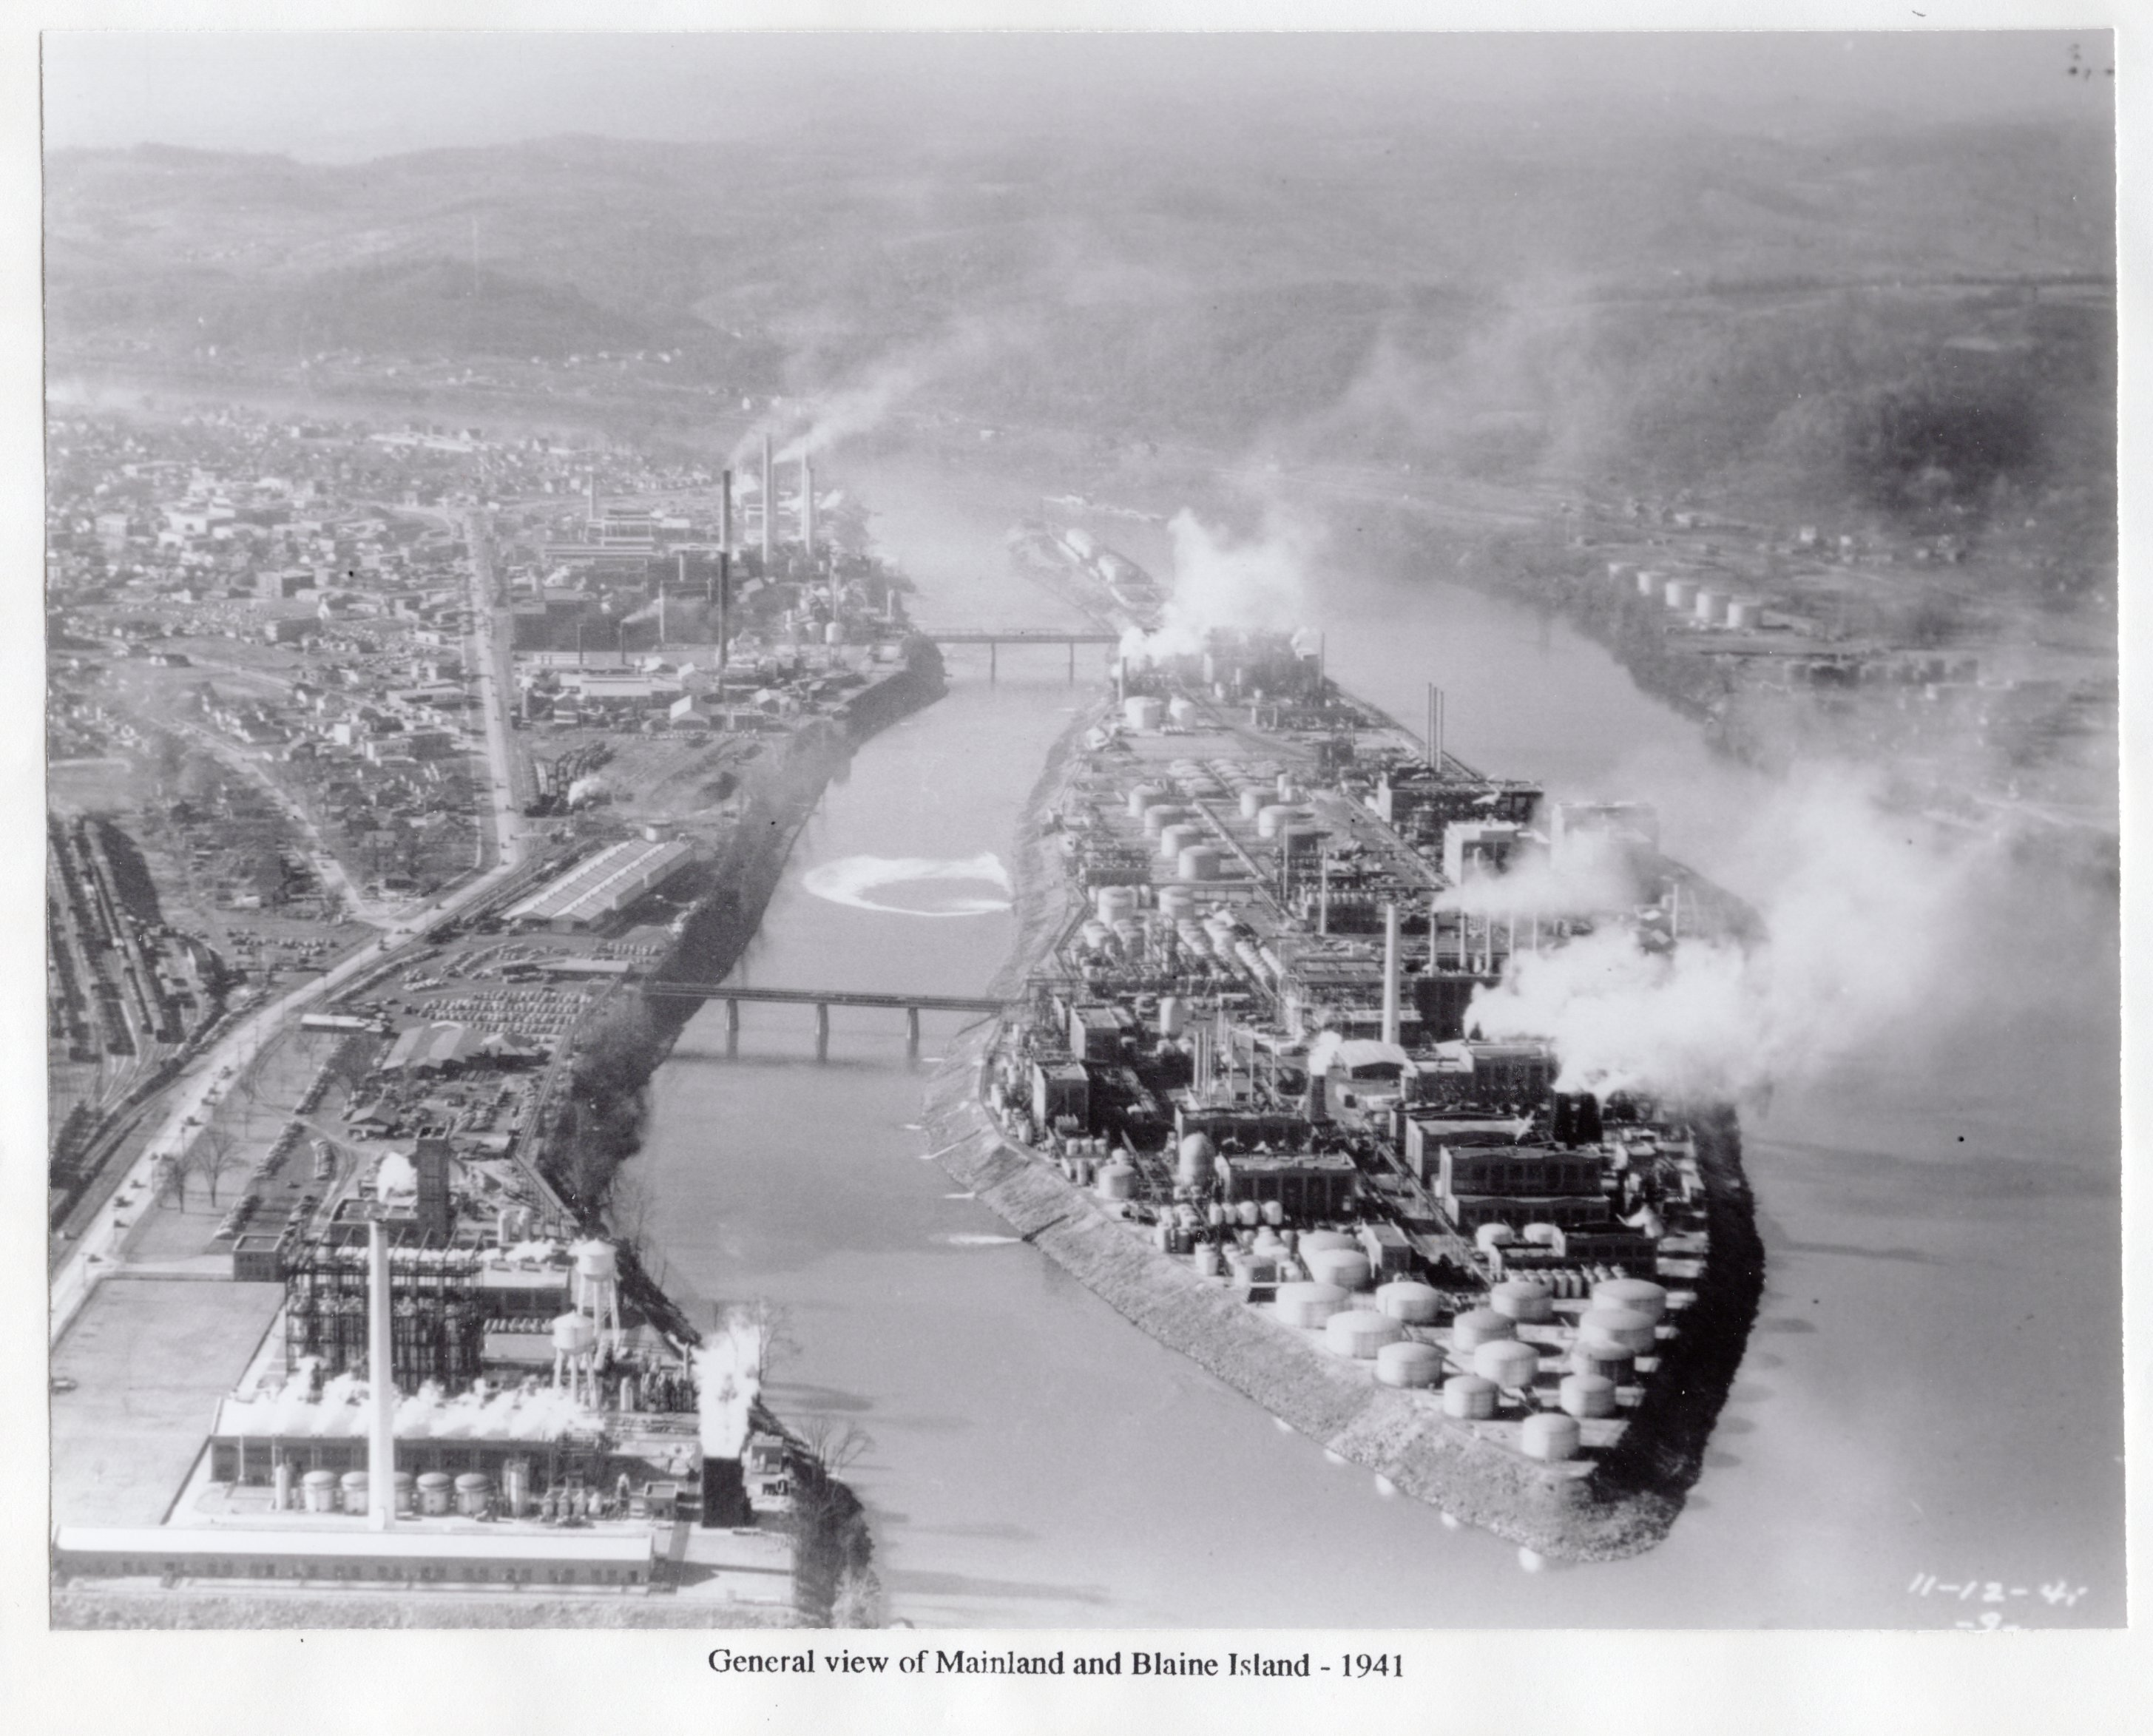 Blaine Island and the Carbide development near America's entry into WW2. Note the second bridge now necessary to support the Island's facilities. Pollution from the plant reached record levels during the war (R. Hieronymus).